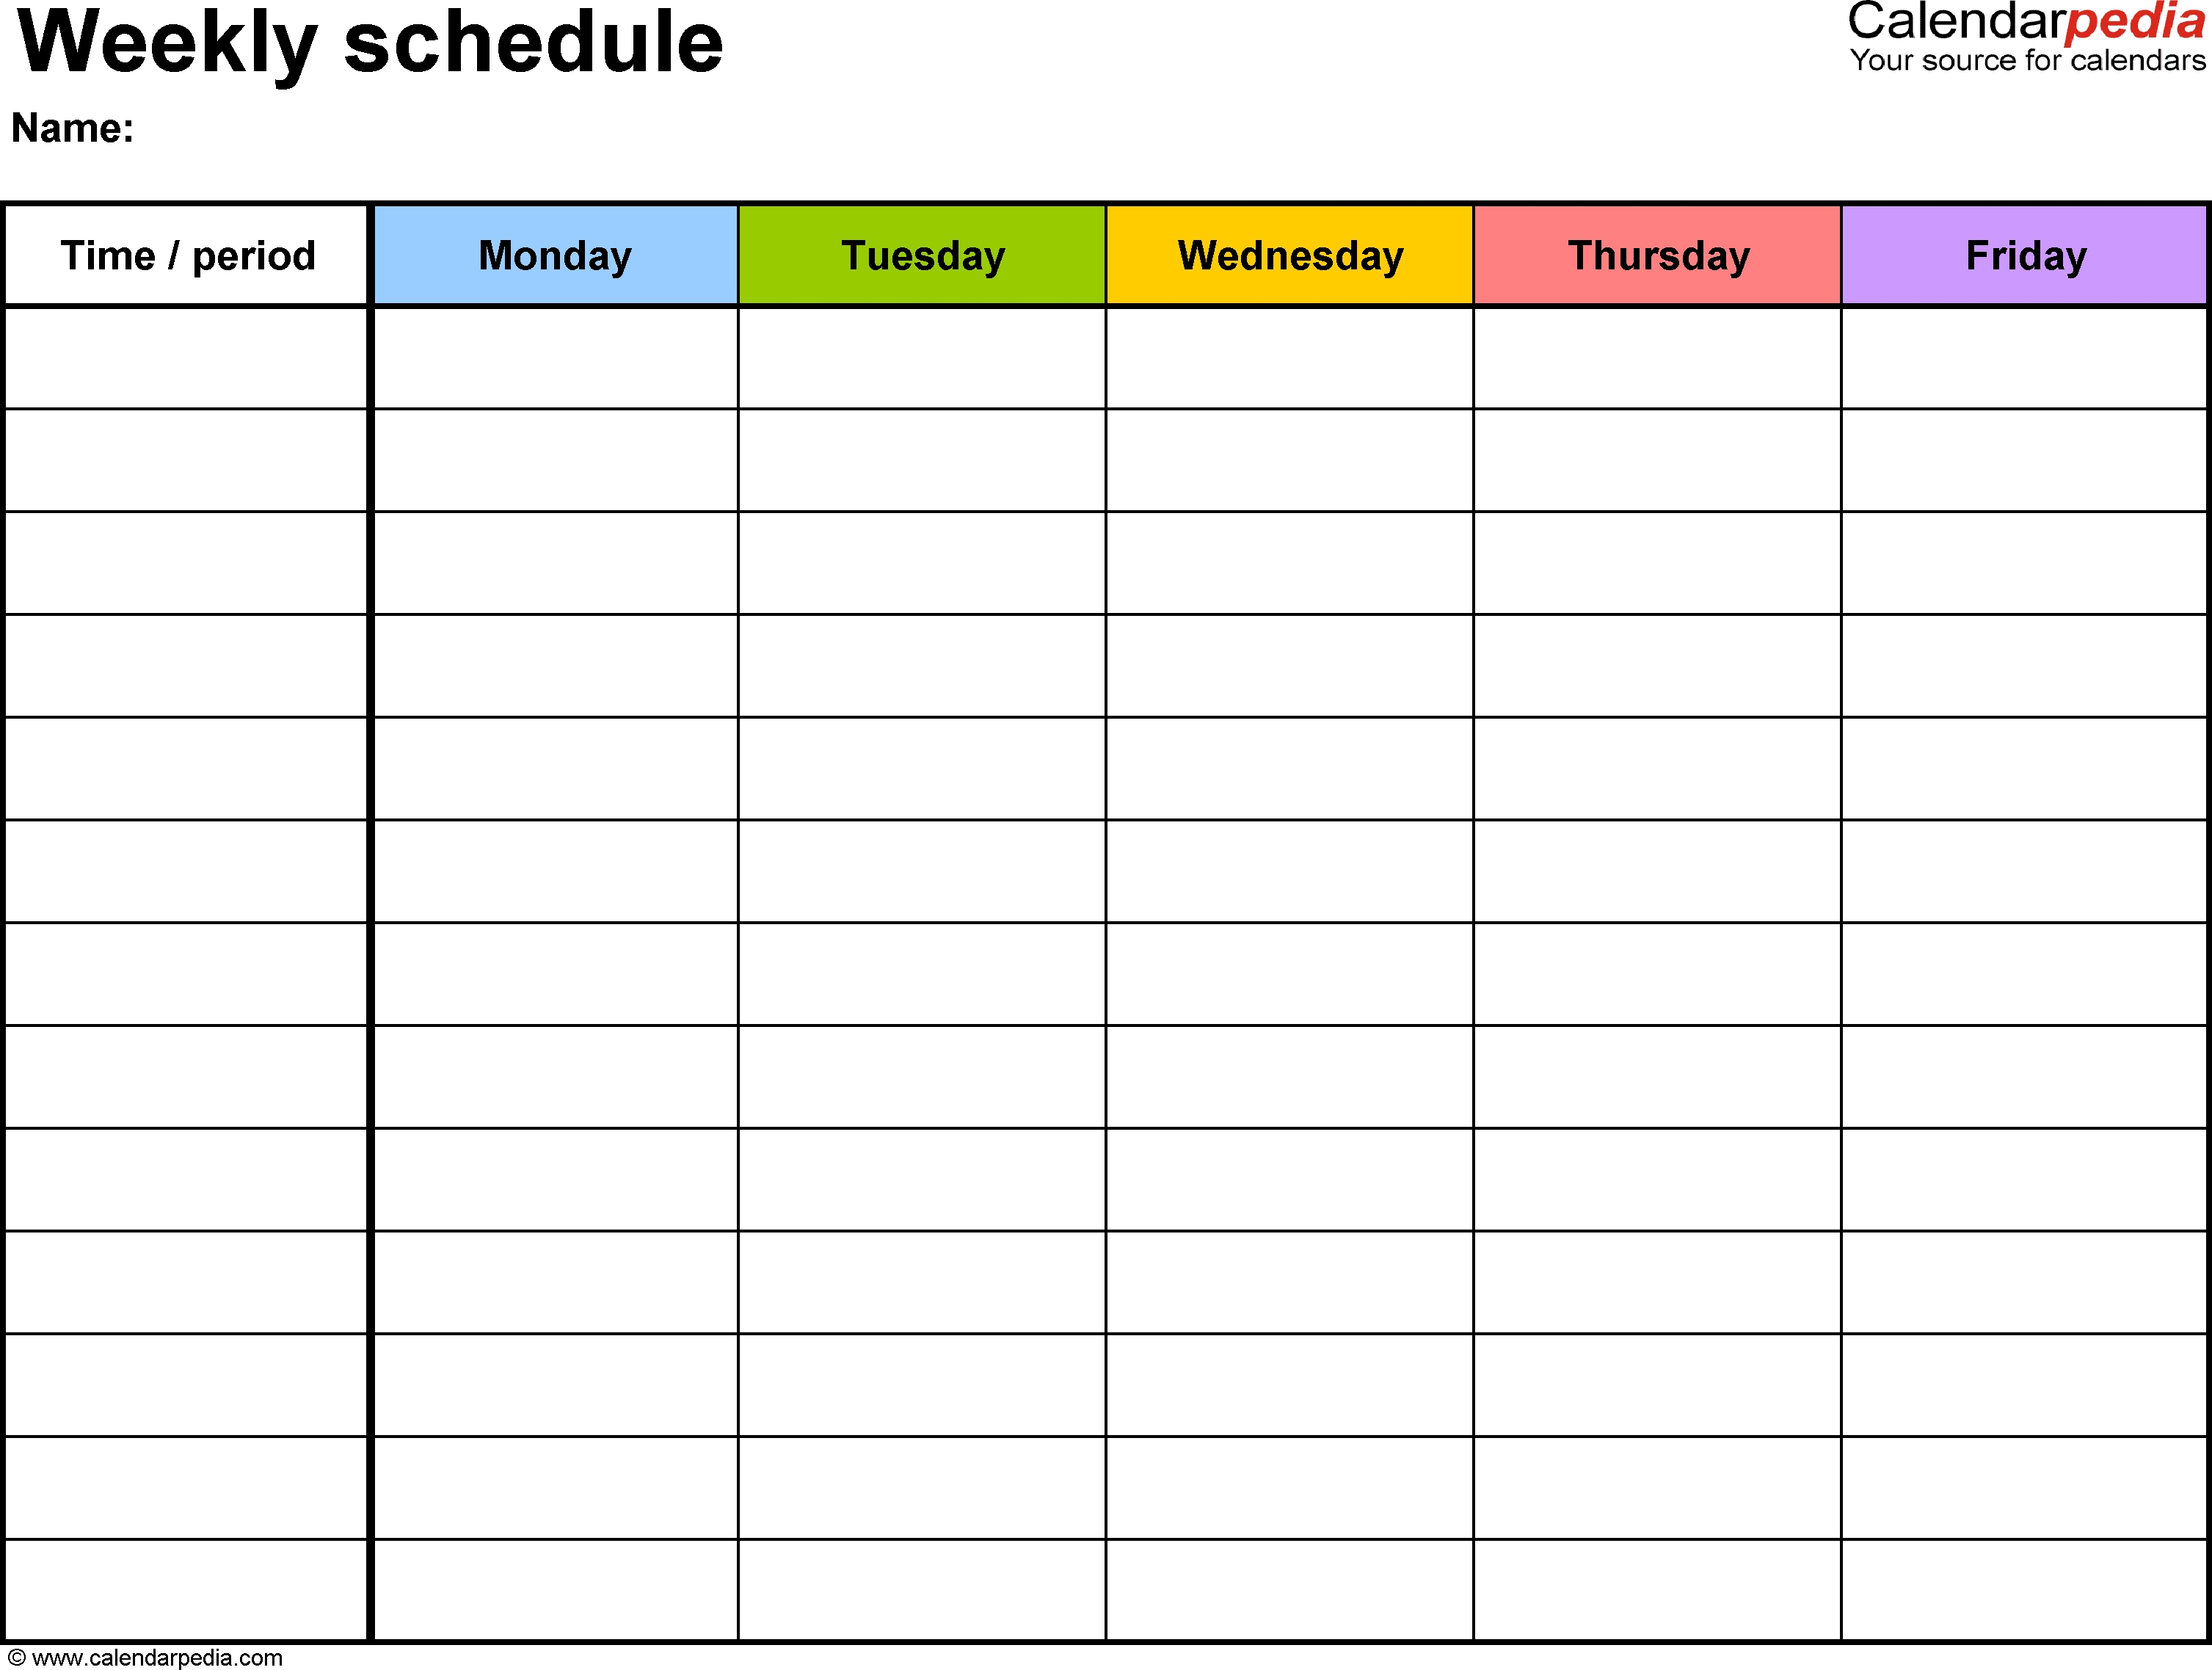 Free Weekly Schedule Templates For Word - 18 Templates-Blank Calendar Five Day